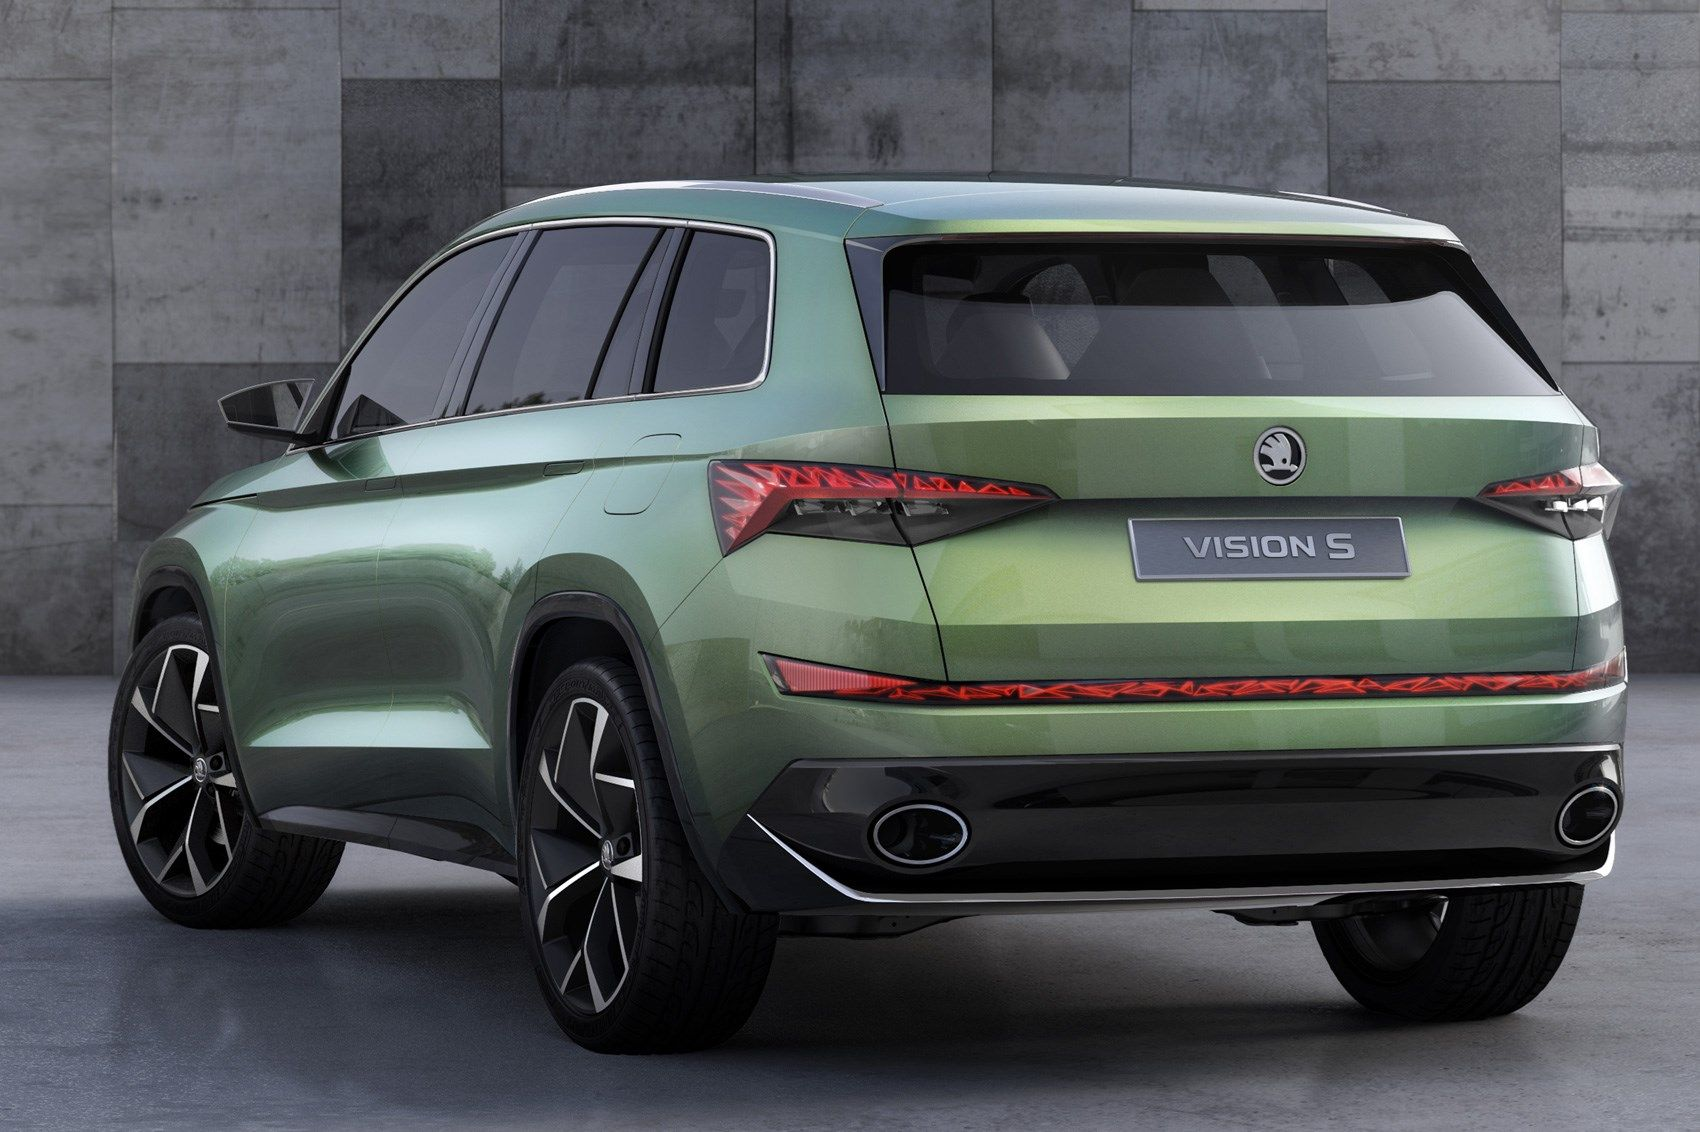 Czech This Out Six Seat Skoda Vision S Concept Unveiled By Car Magazine